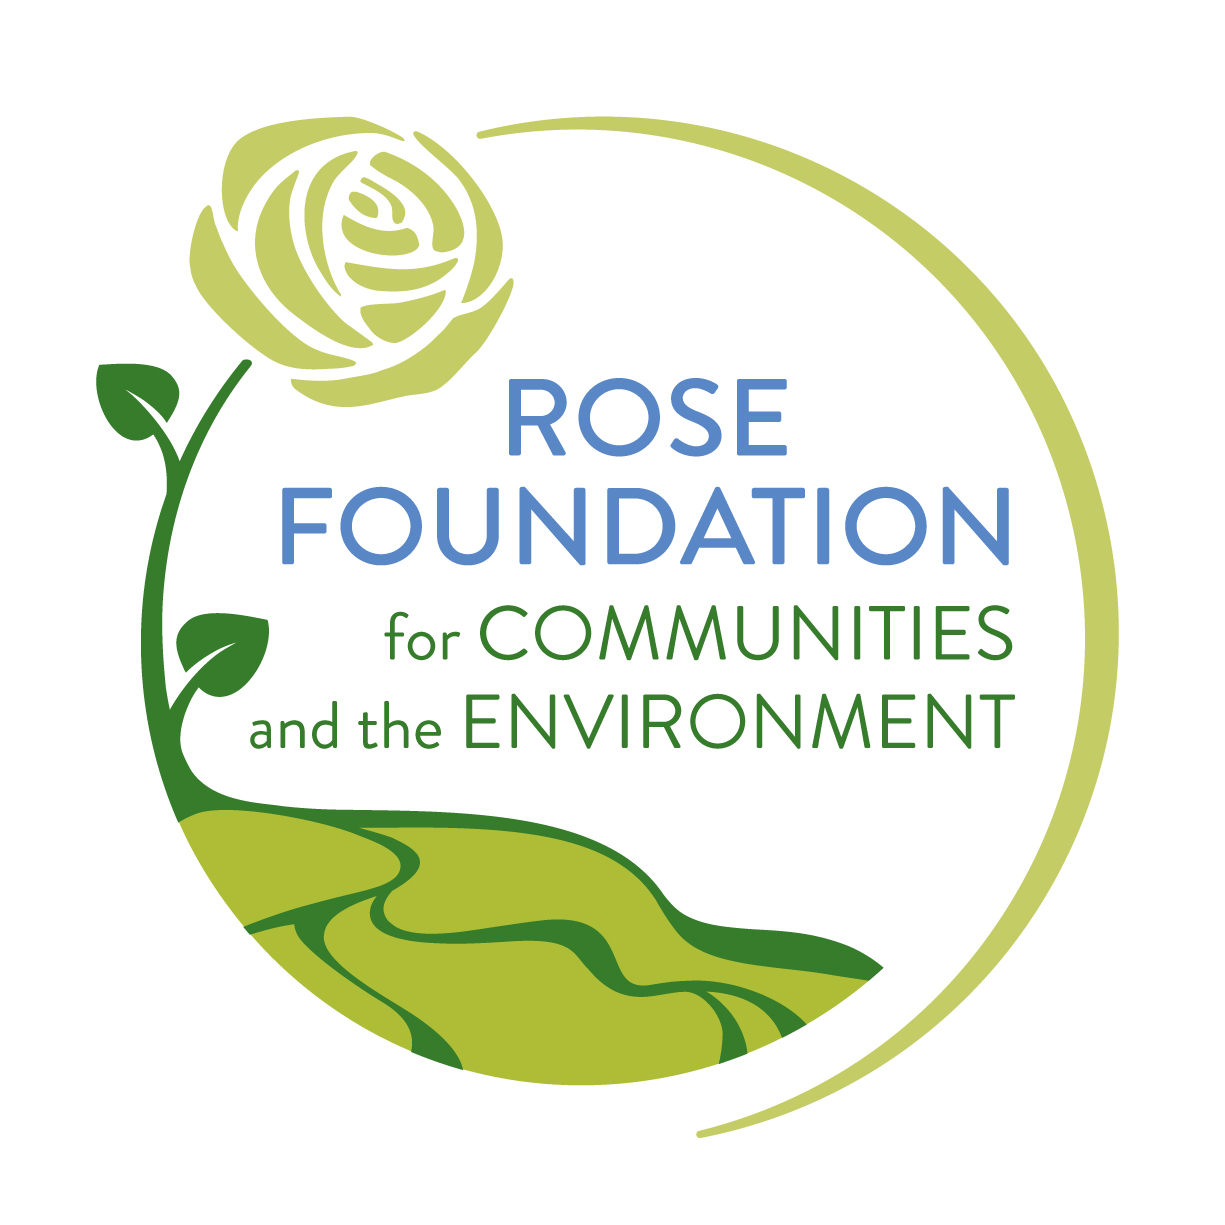 Rose Foundation for Communties and the Environment